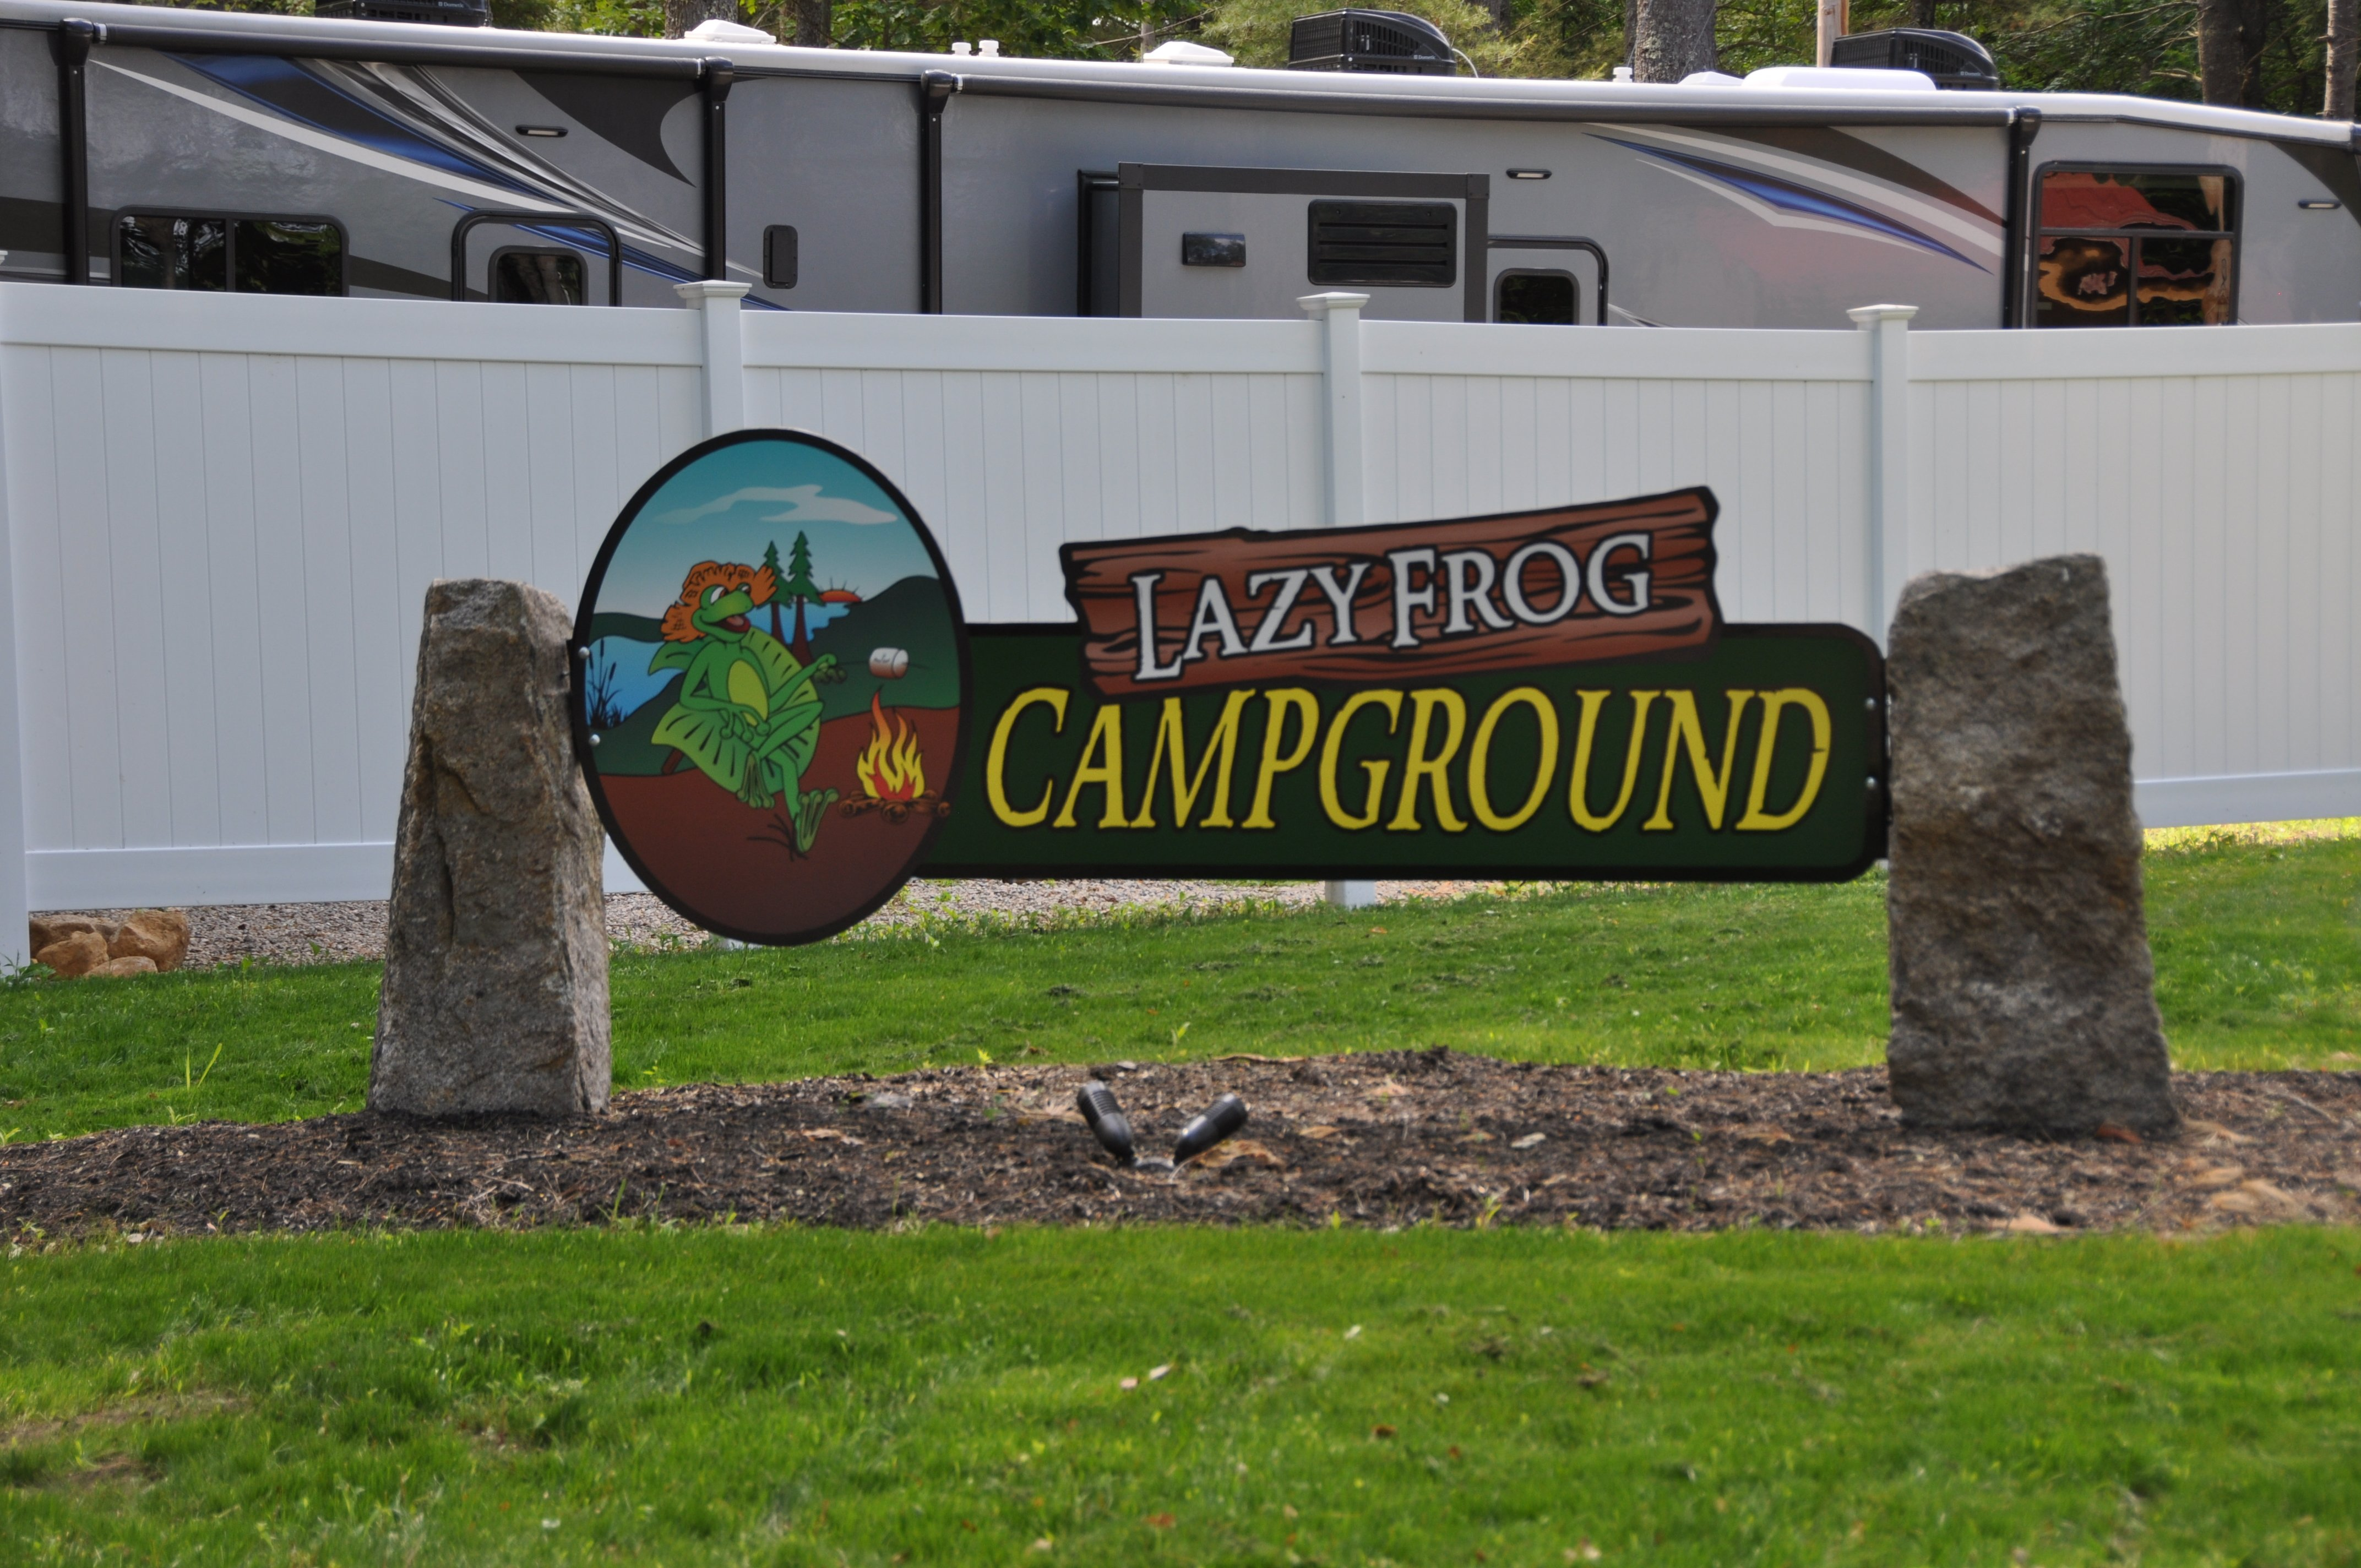 We invite you to stay a day, a week, a month or a season. Experience camping in popular Southern Maine woodlands.